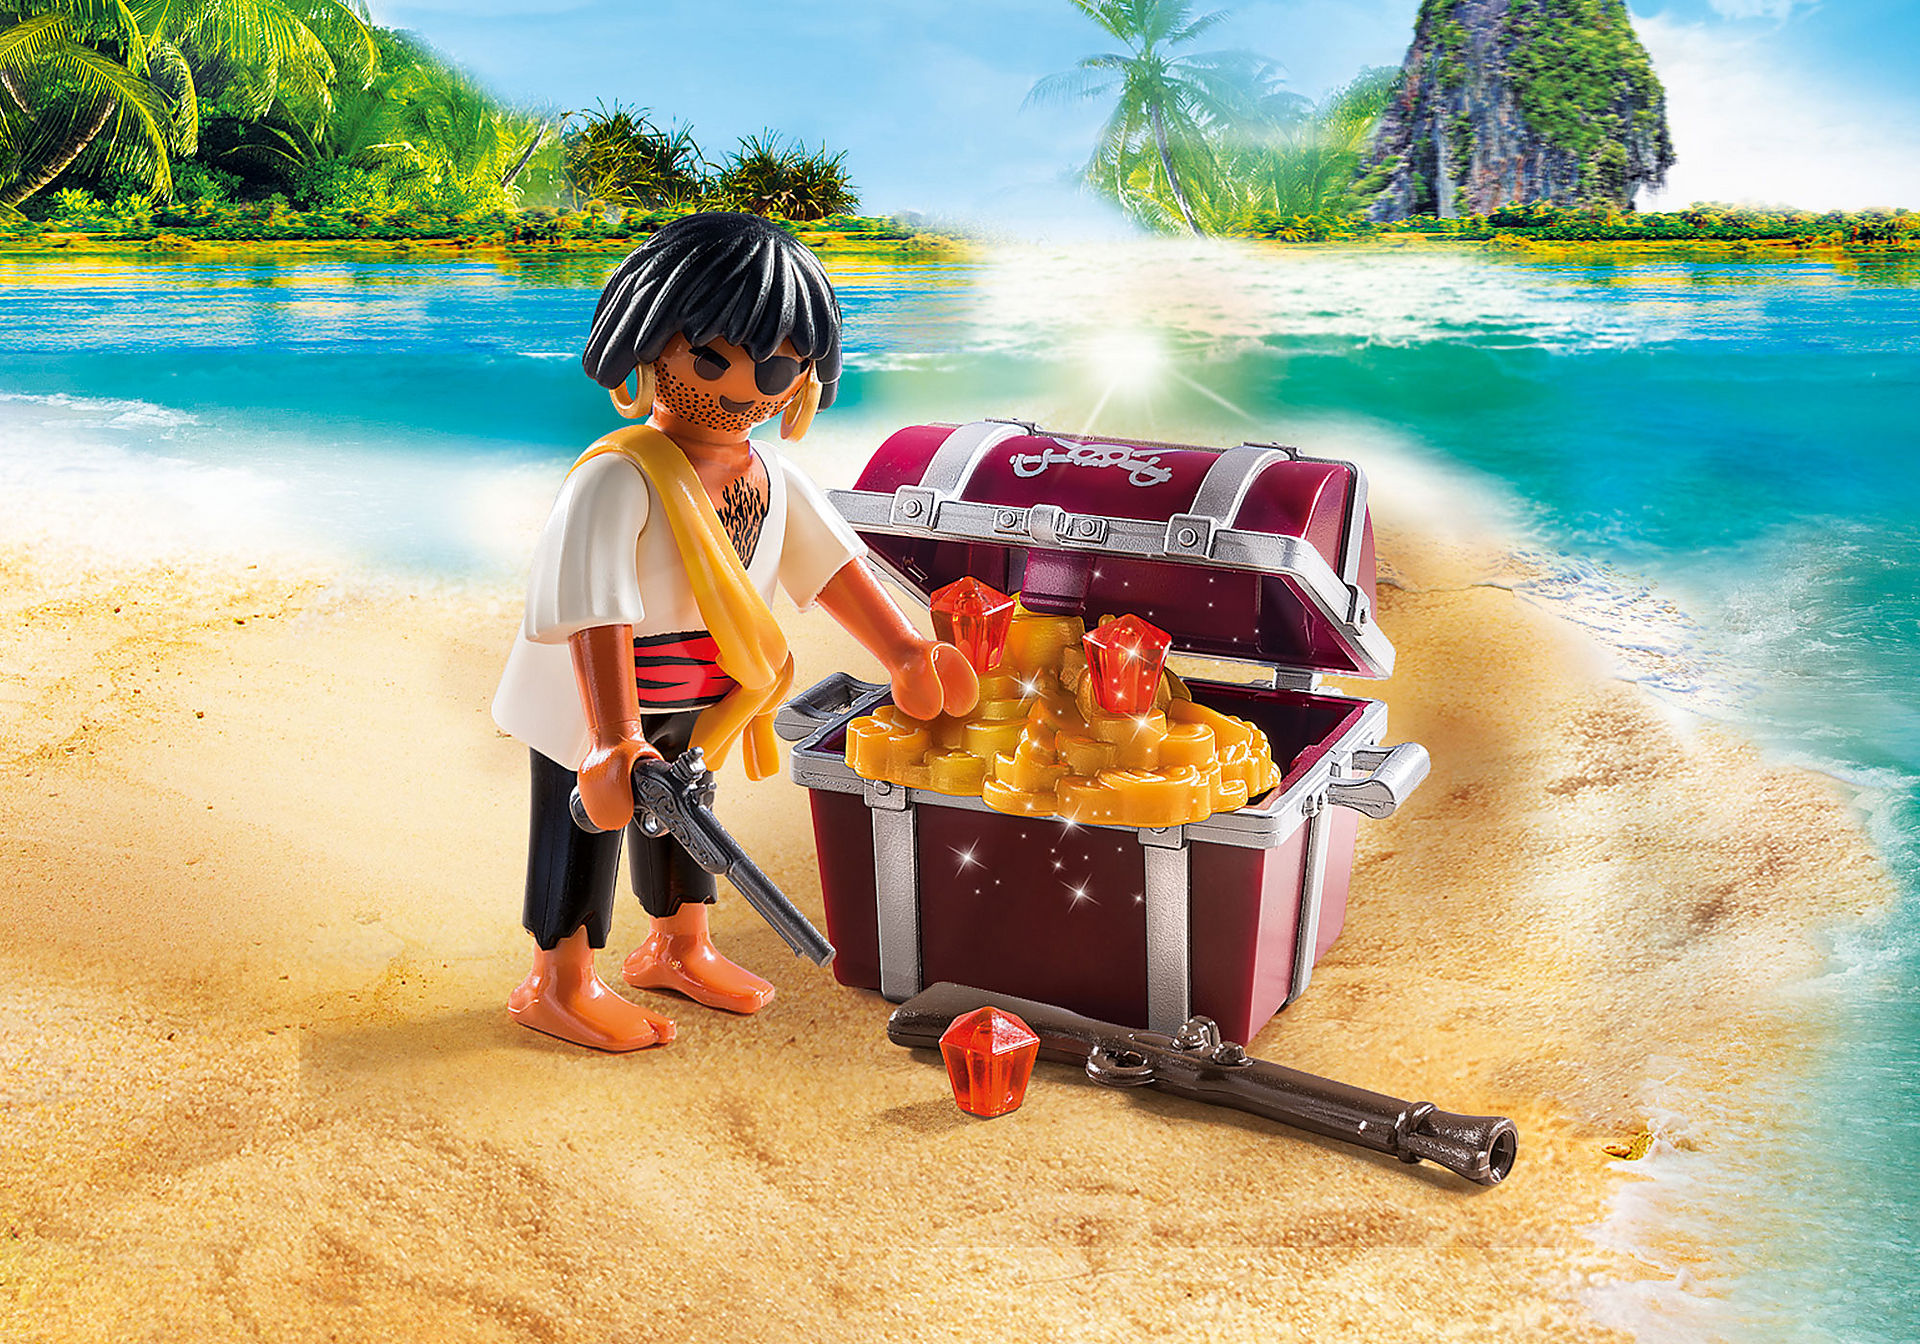 http://media.playmobil.com/i/playmobil/9358_product_detail/Pirat med skattkista